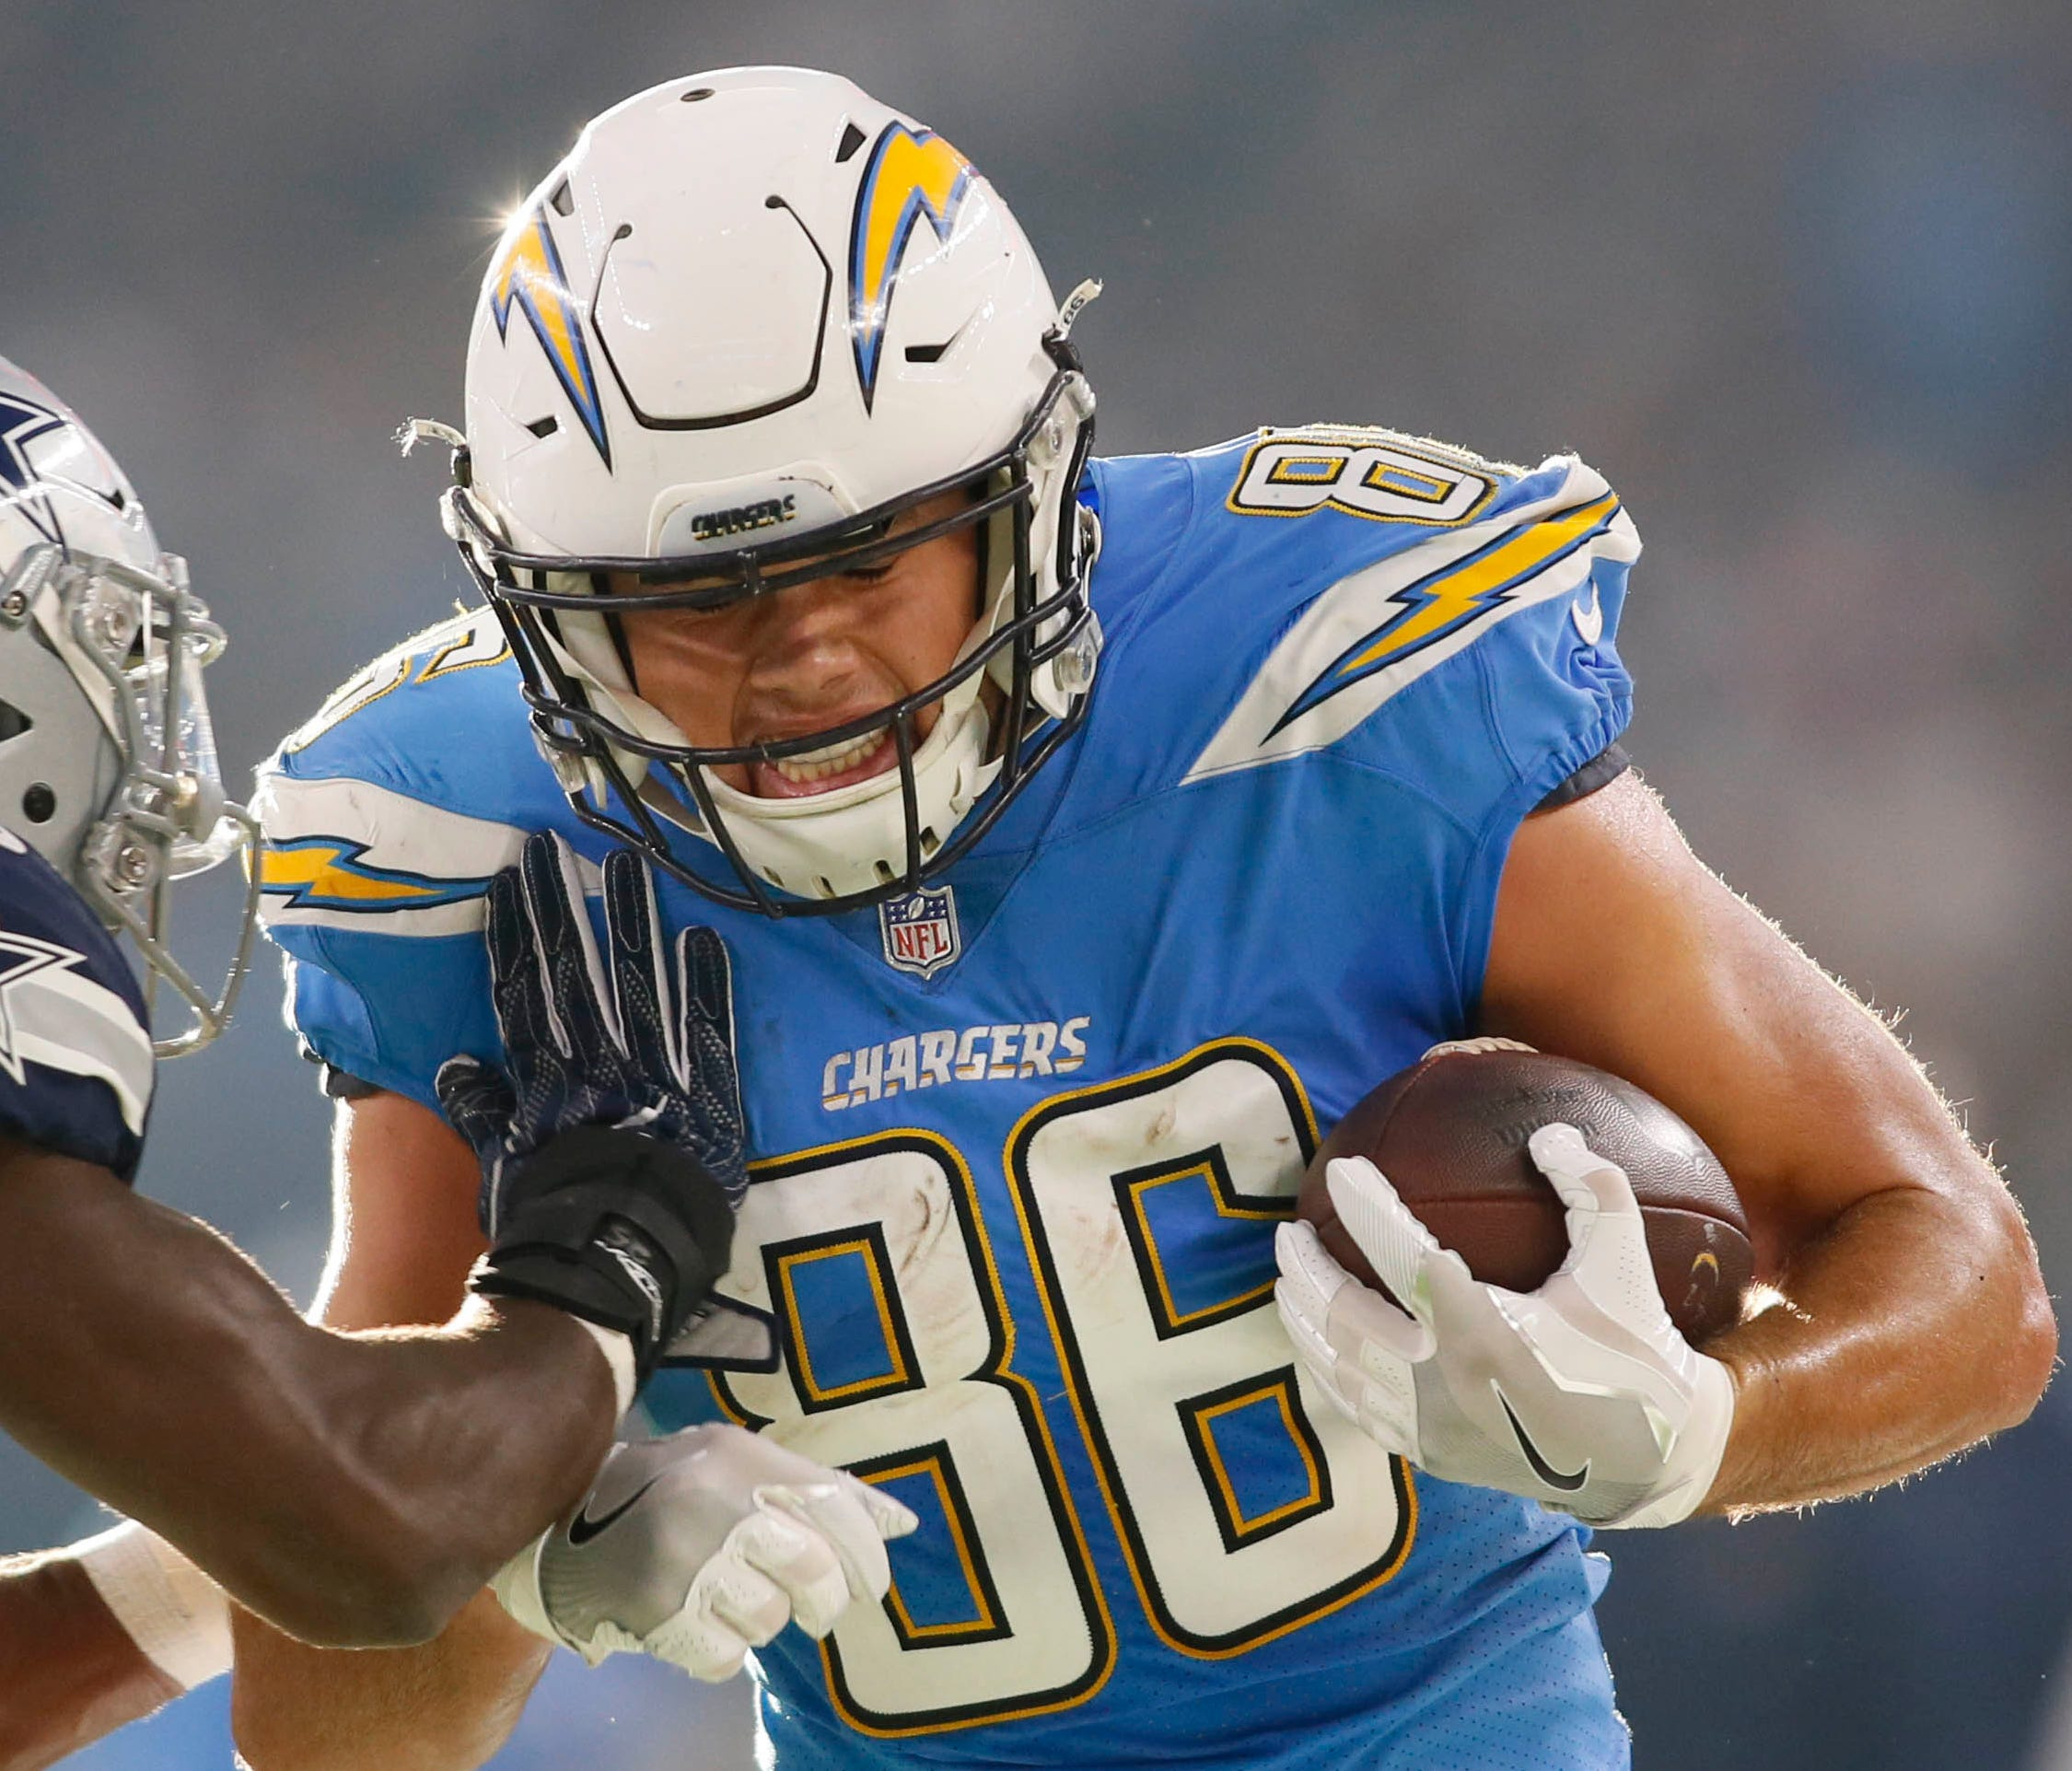 Chargers tight end Hunter Henry caught 45 passes for 579 yards and four touchdowns last season.